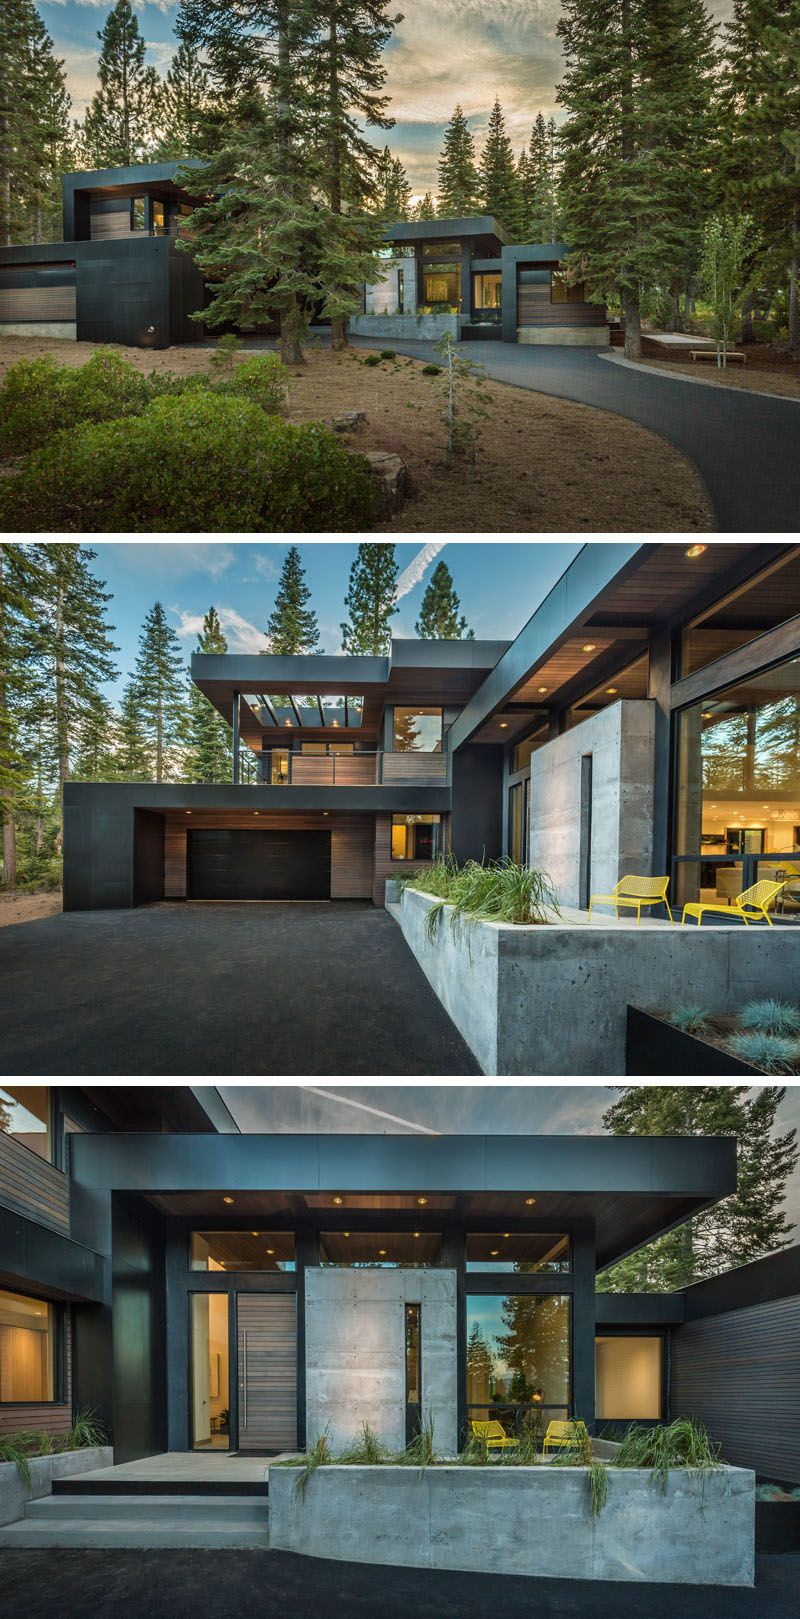 18 modern houses in the forest this home tucked into the forest is surrounded by trees on all sides creating a beautiful scene no matter the season